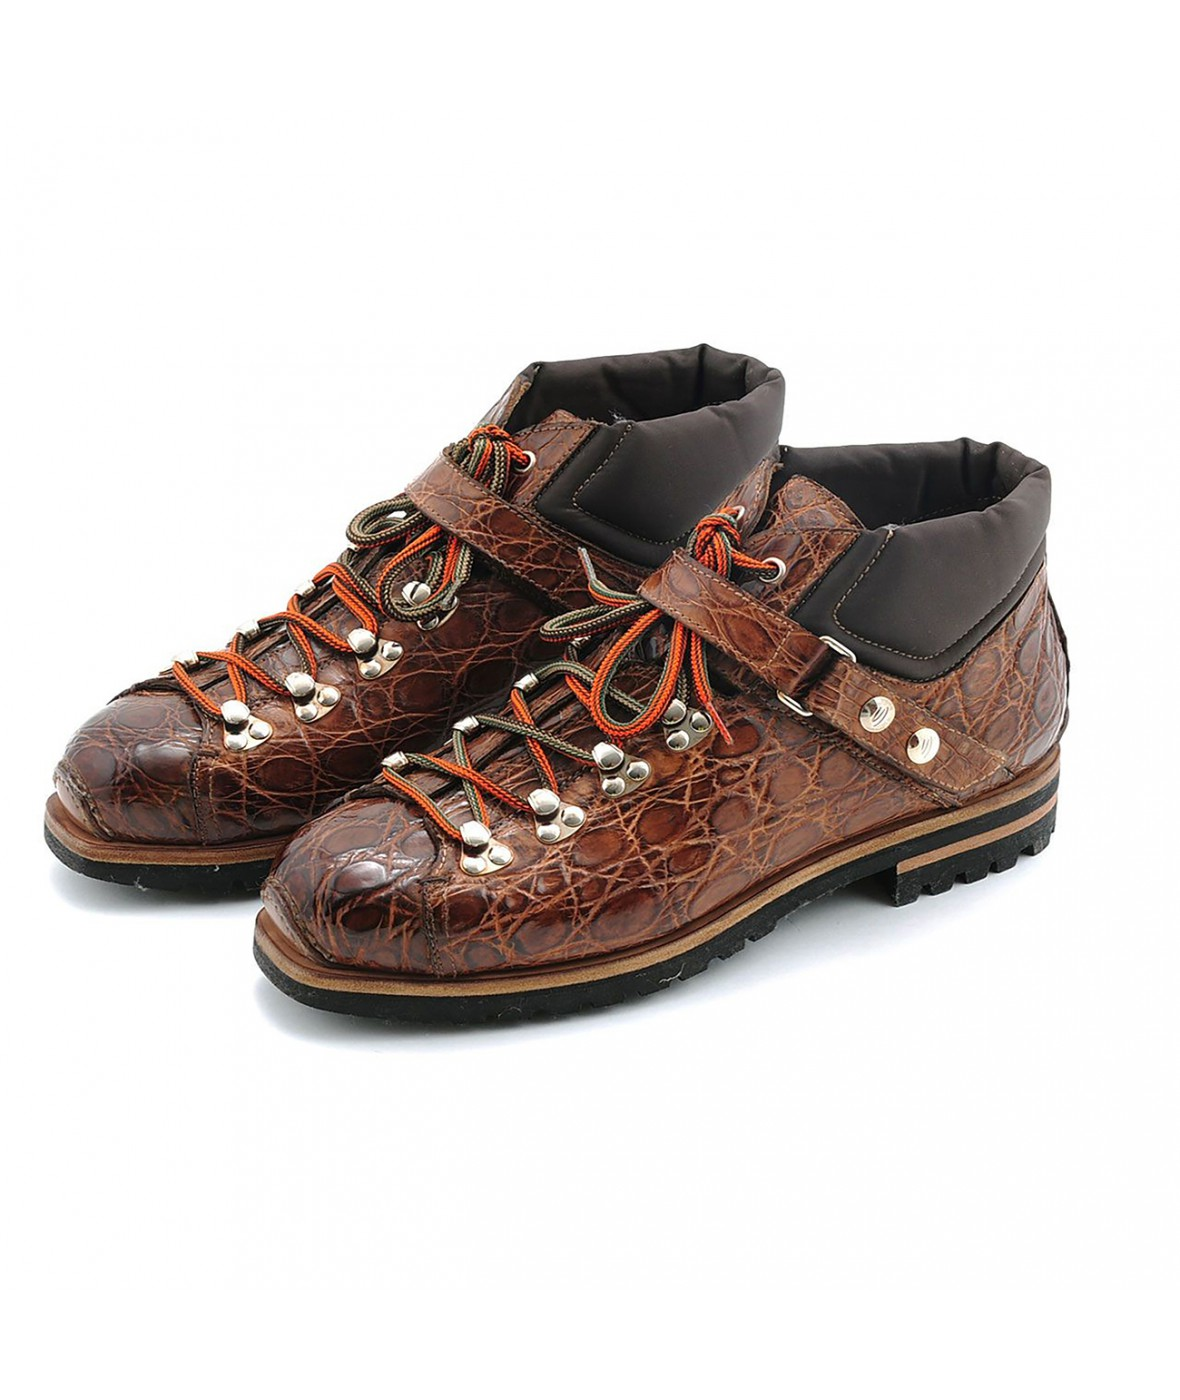 Santoni Outdoor Limited (21200)